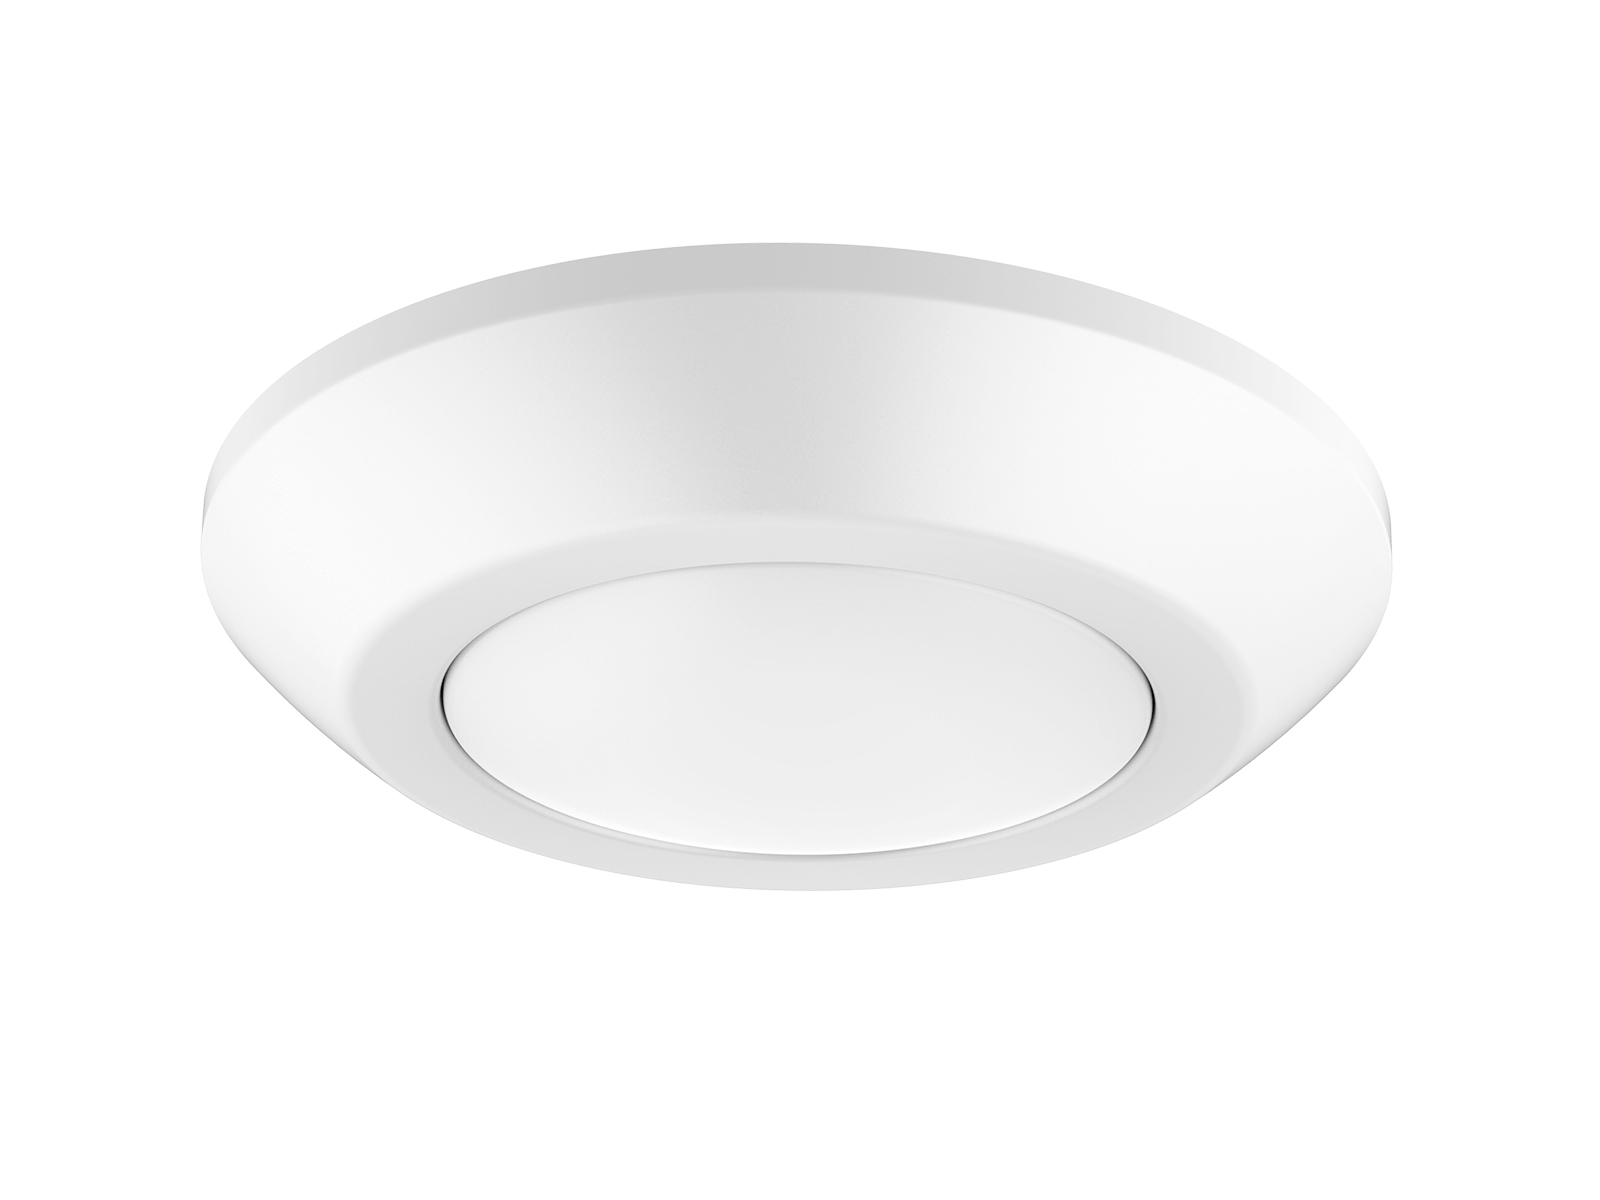 DL101 LED Downlight